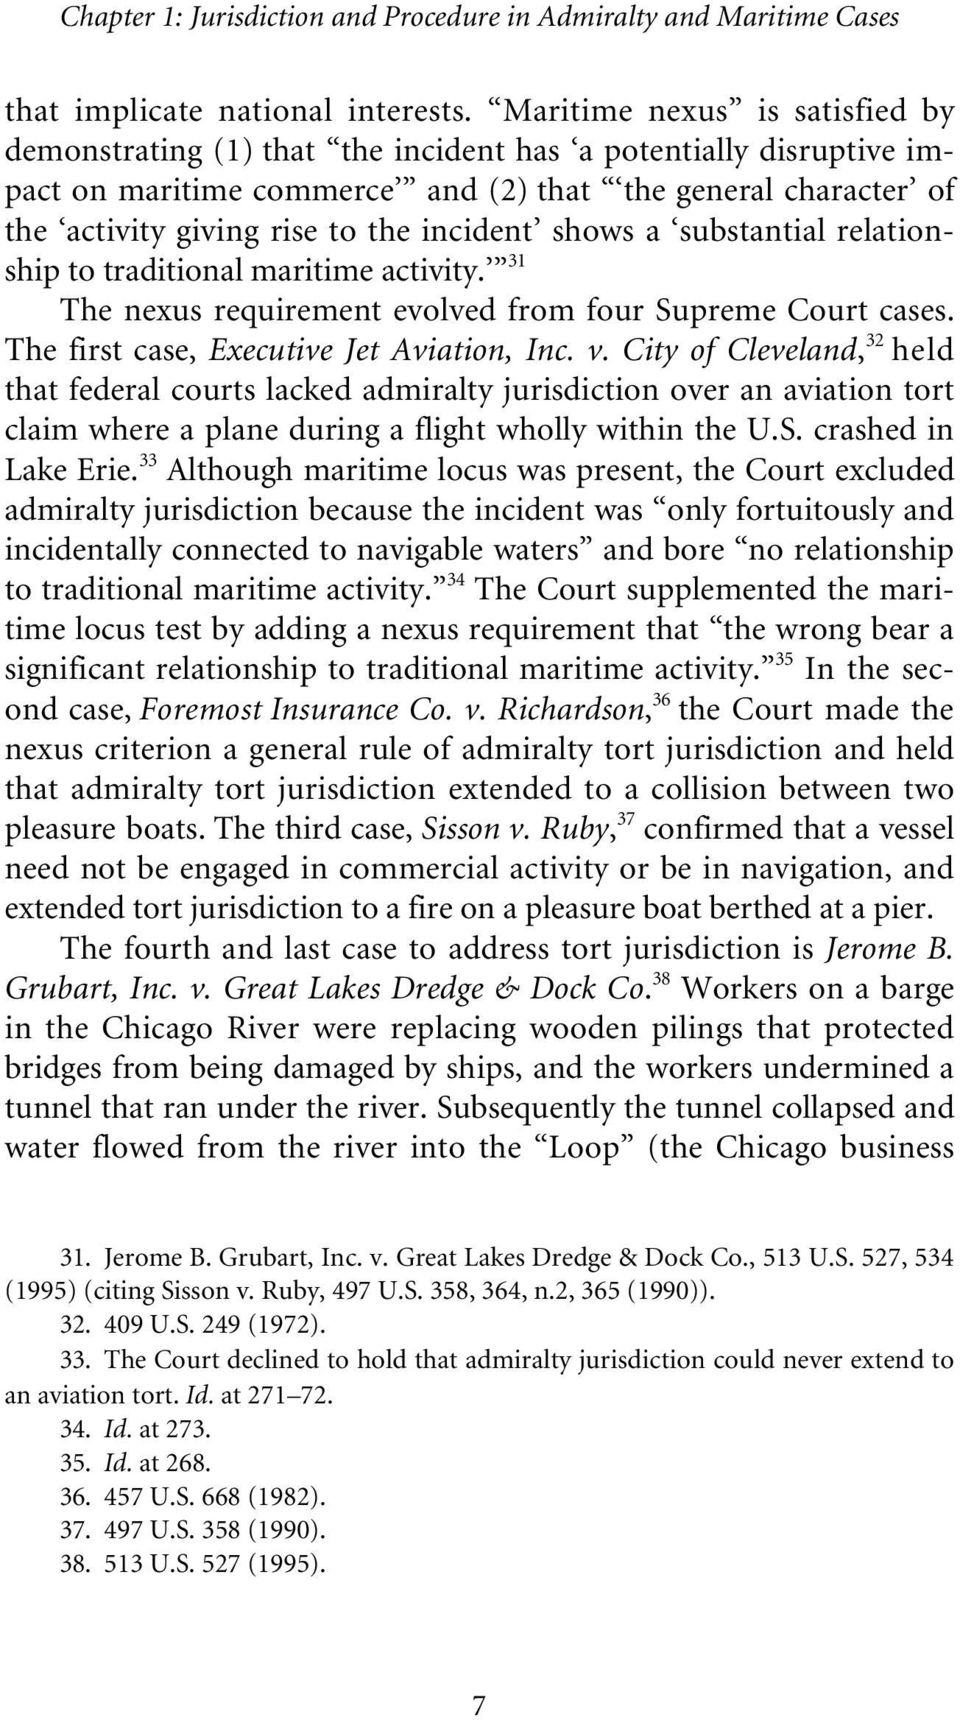 incident shows a substantial relationship to traditional maritime activity. 31 The nexus requirement evolved from four Supreme Court cases. The first case, Executive Jet Aviation, Inc. v.